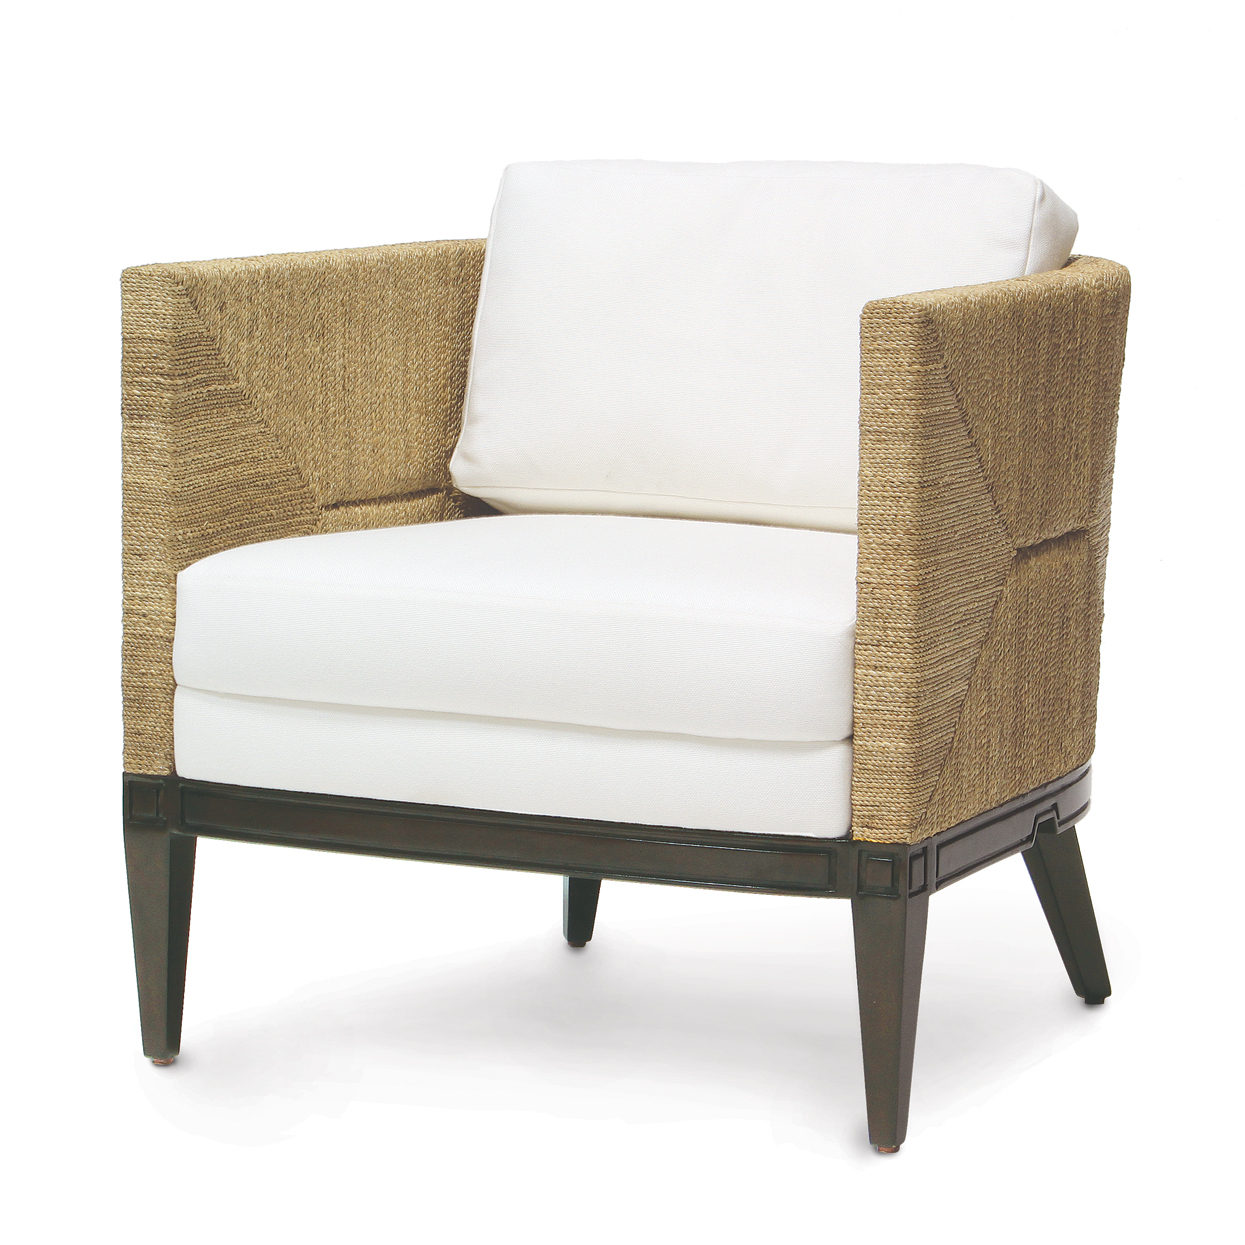 Description. CAMERON LOUNGE CHAIR